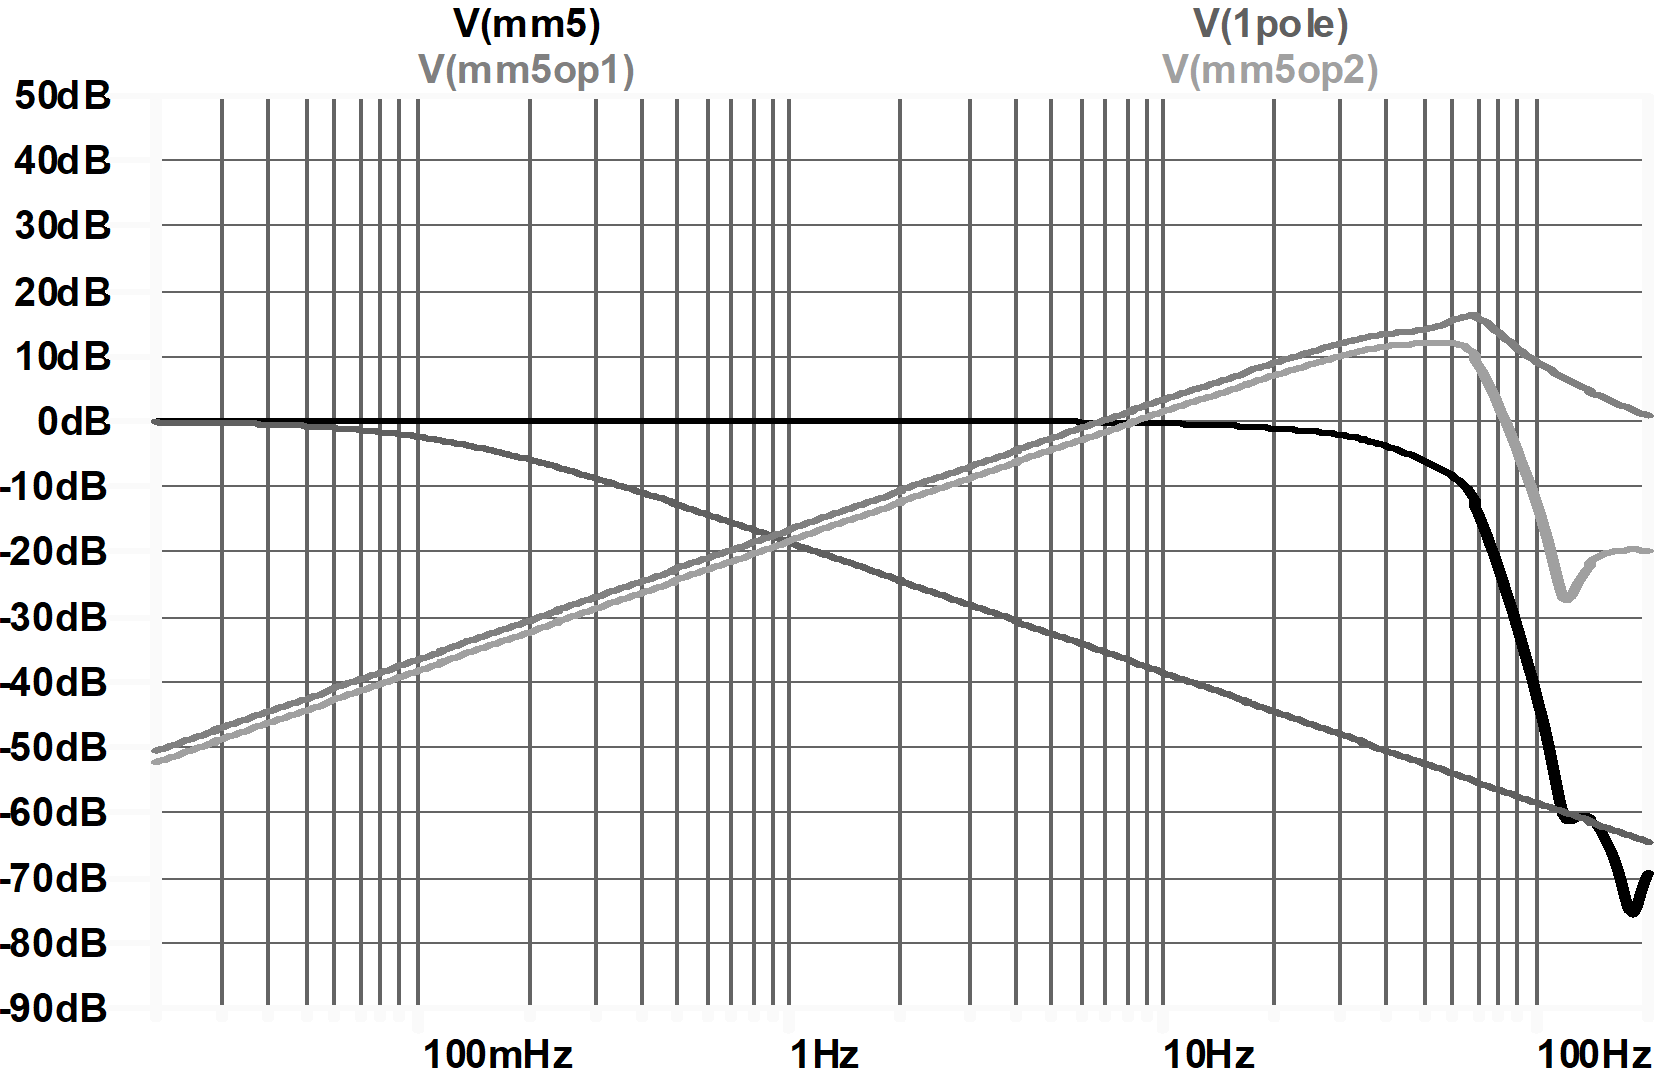 filter frequency response peaks